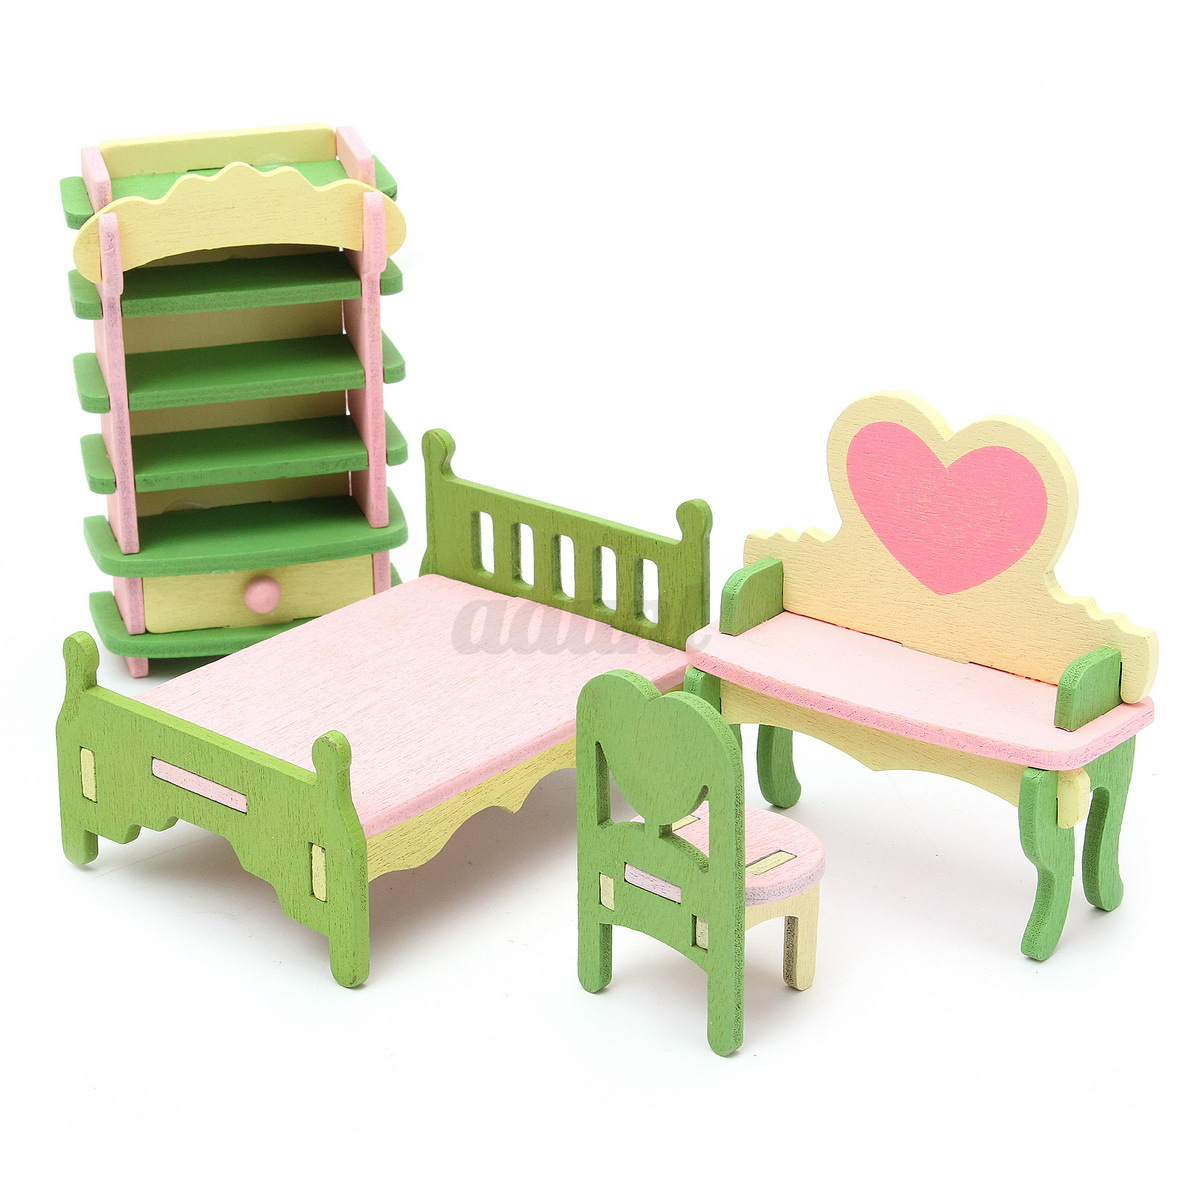 Wooden Furniture Dolls House Family Miniature Room Set Child Kids Gift Toy New Ebay